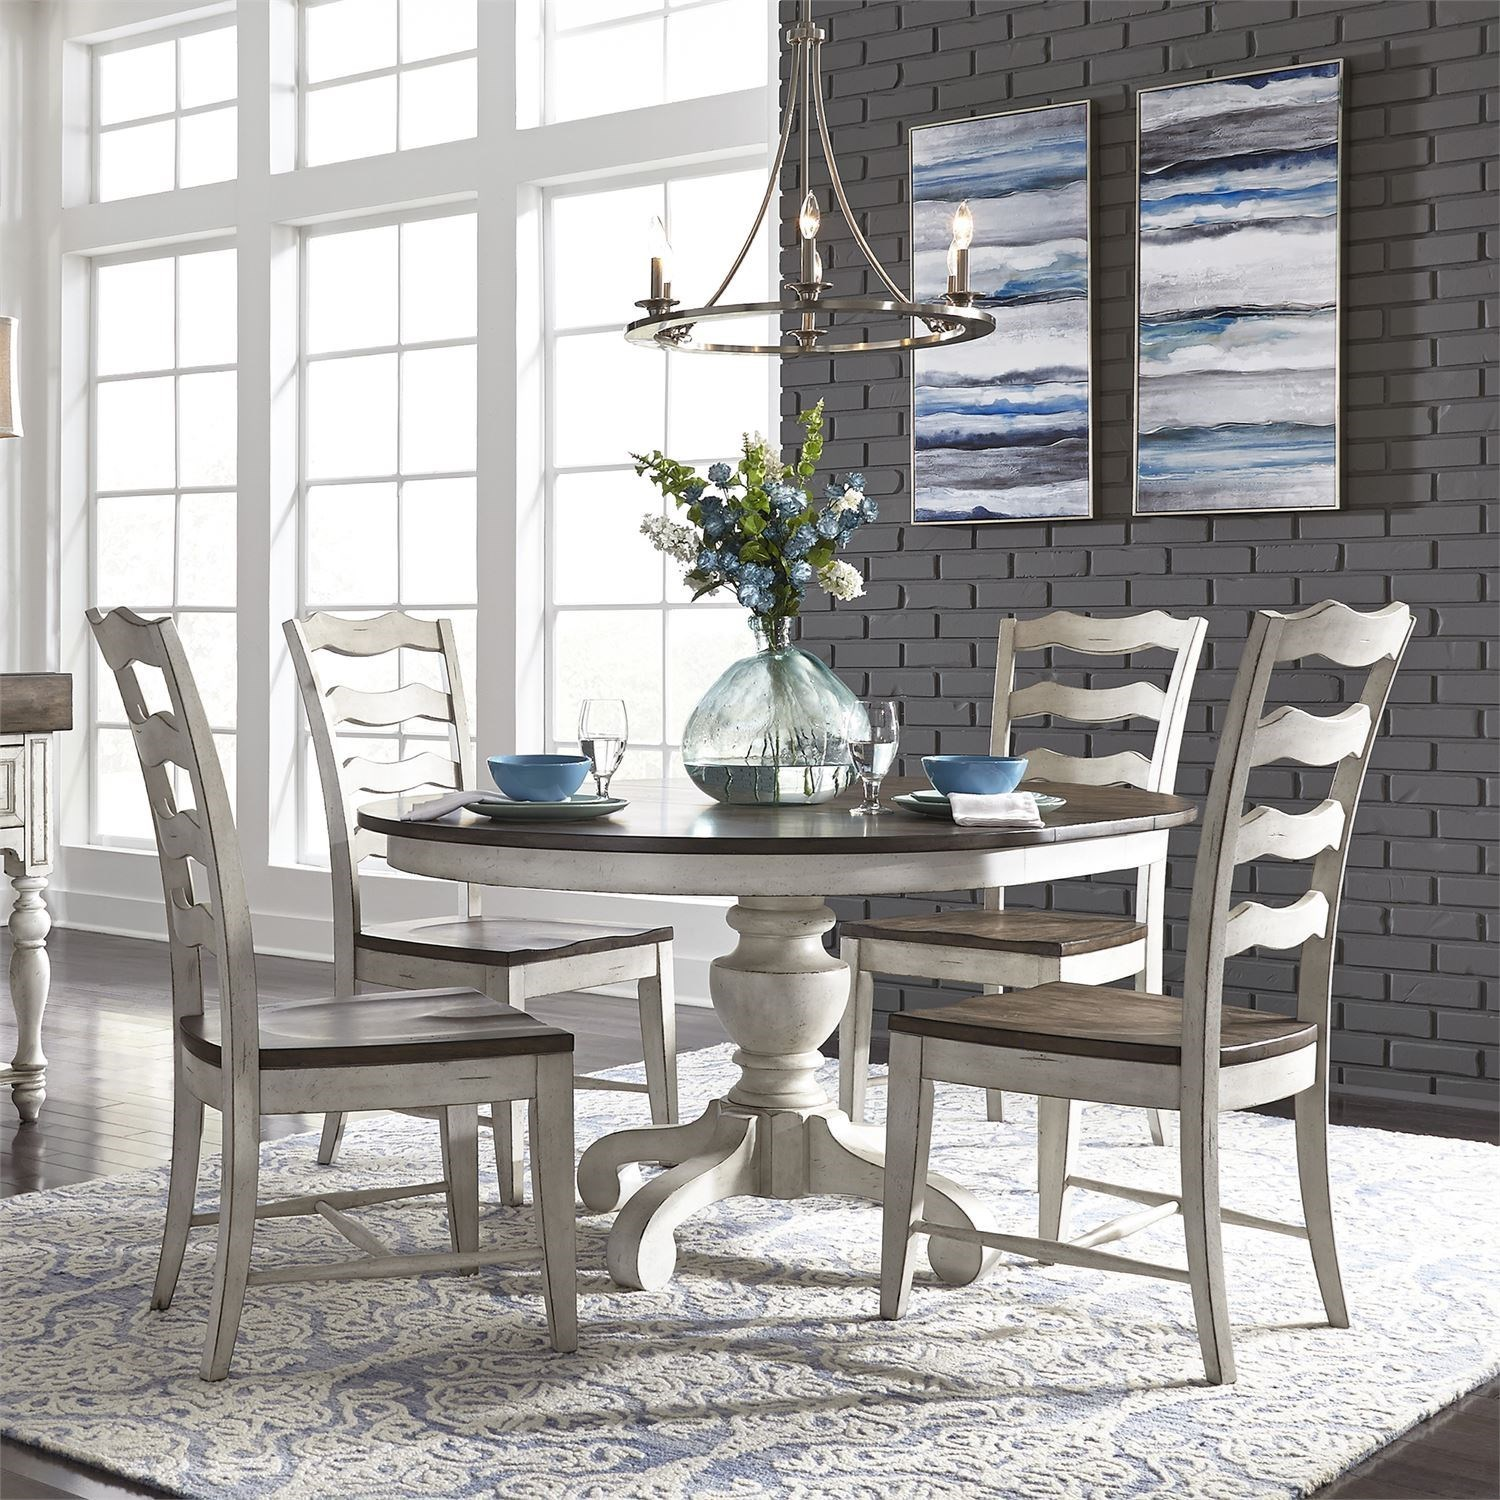 Parisian Marketplace 5-Piece Pedestal Table Set by Liberty Furniture at Johnny Janosik